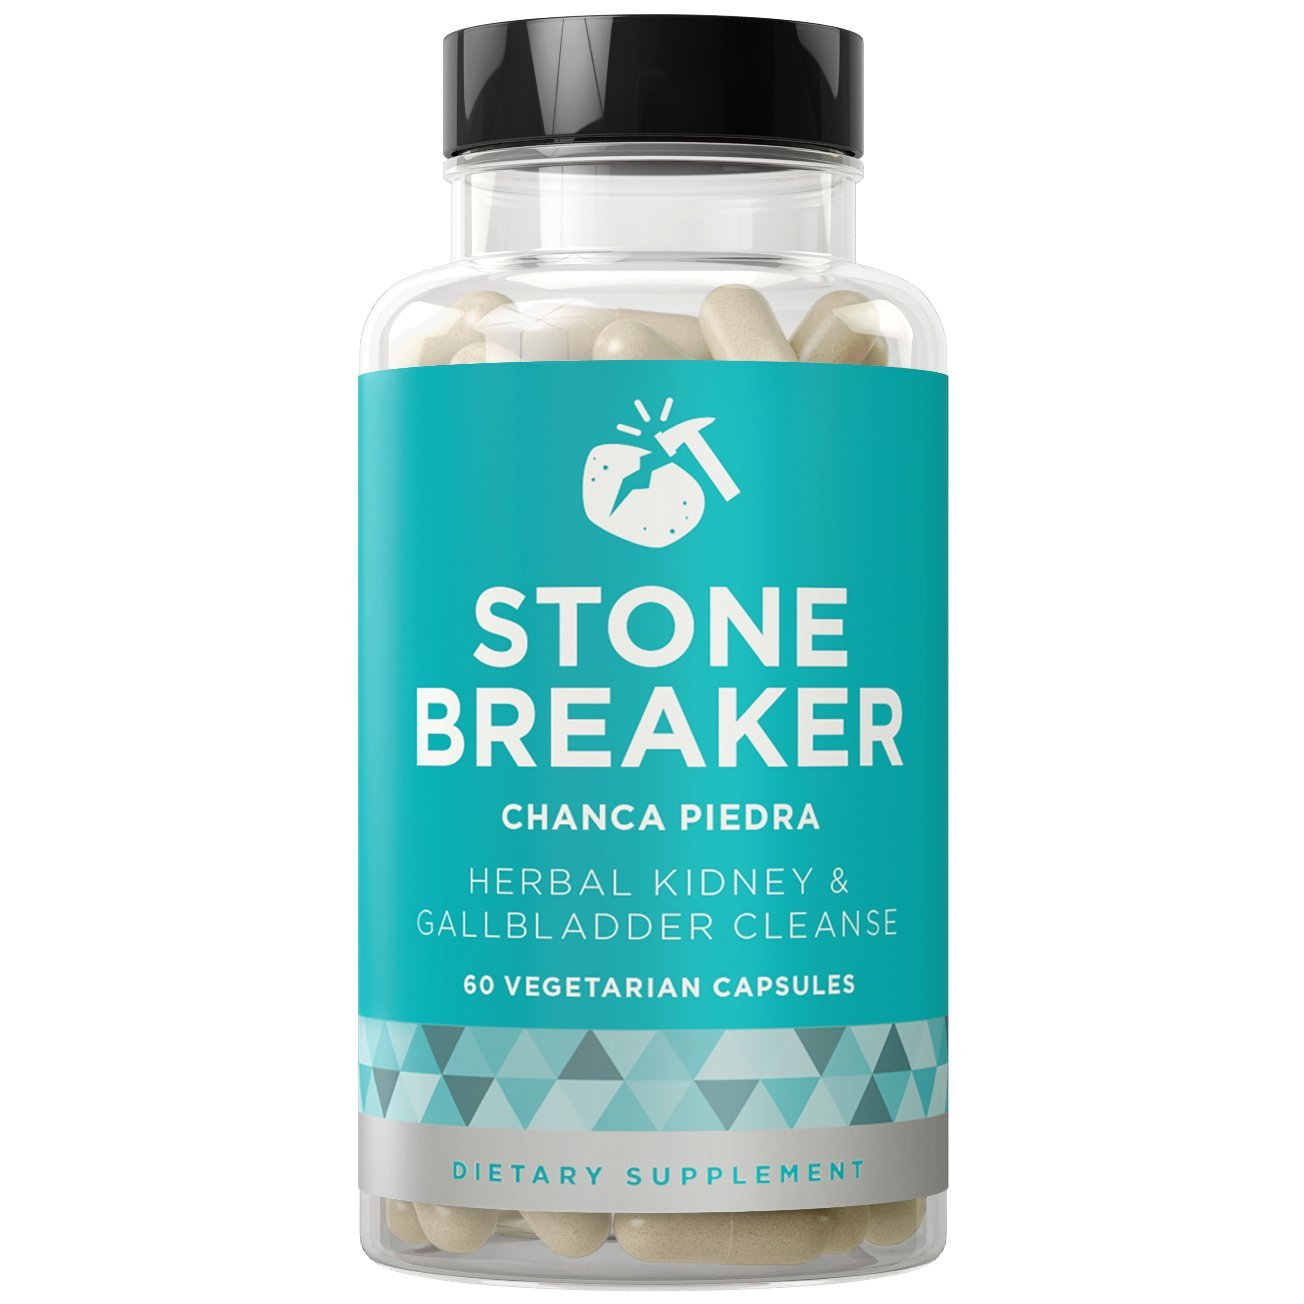 STONE BREAKER Chanca Piedra - Kidney and Gallbladder Detoxifying Cleanse - Chronic Pain, Nausea, Frequent Urination - Hydrangea & Celery Seed - 60 Vegetarian Soft Capsules